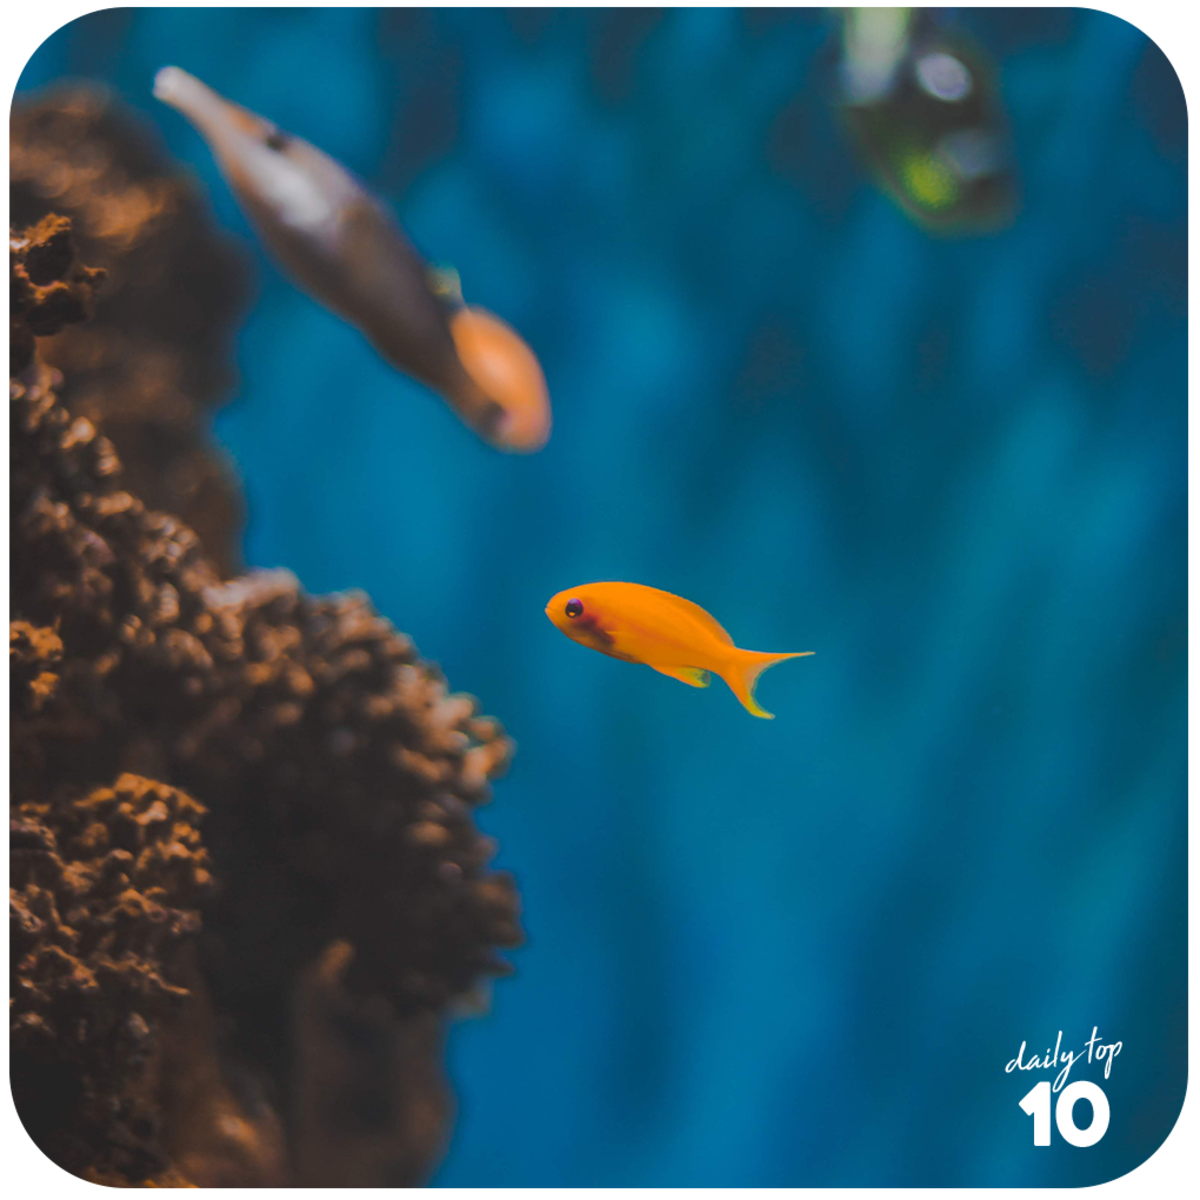 Coral reefs are shelter to small fishes so they are crucial in sustaining fish population.